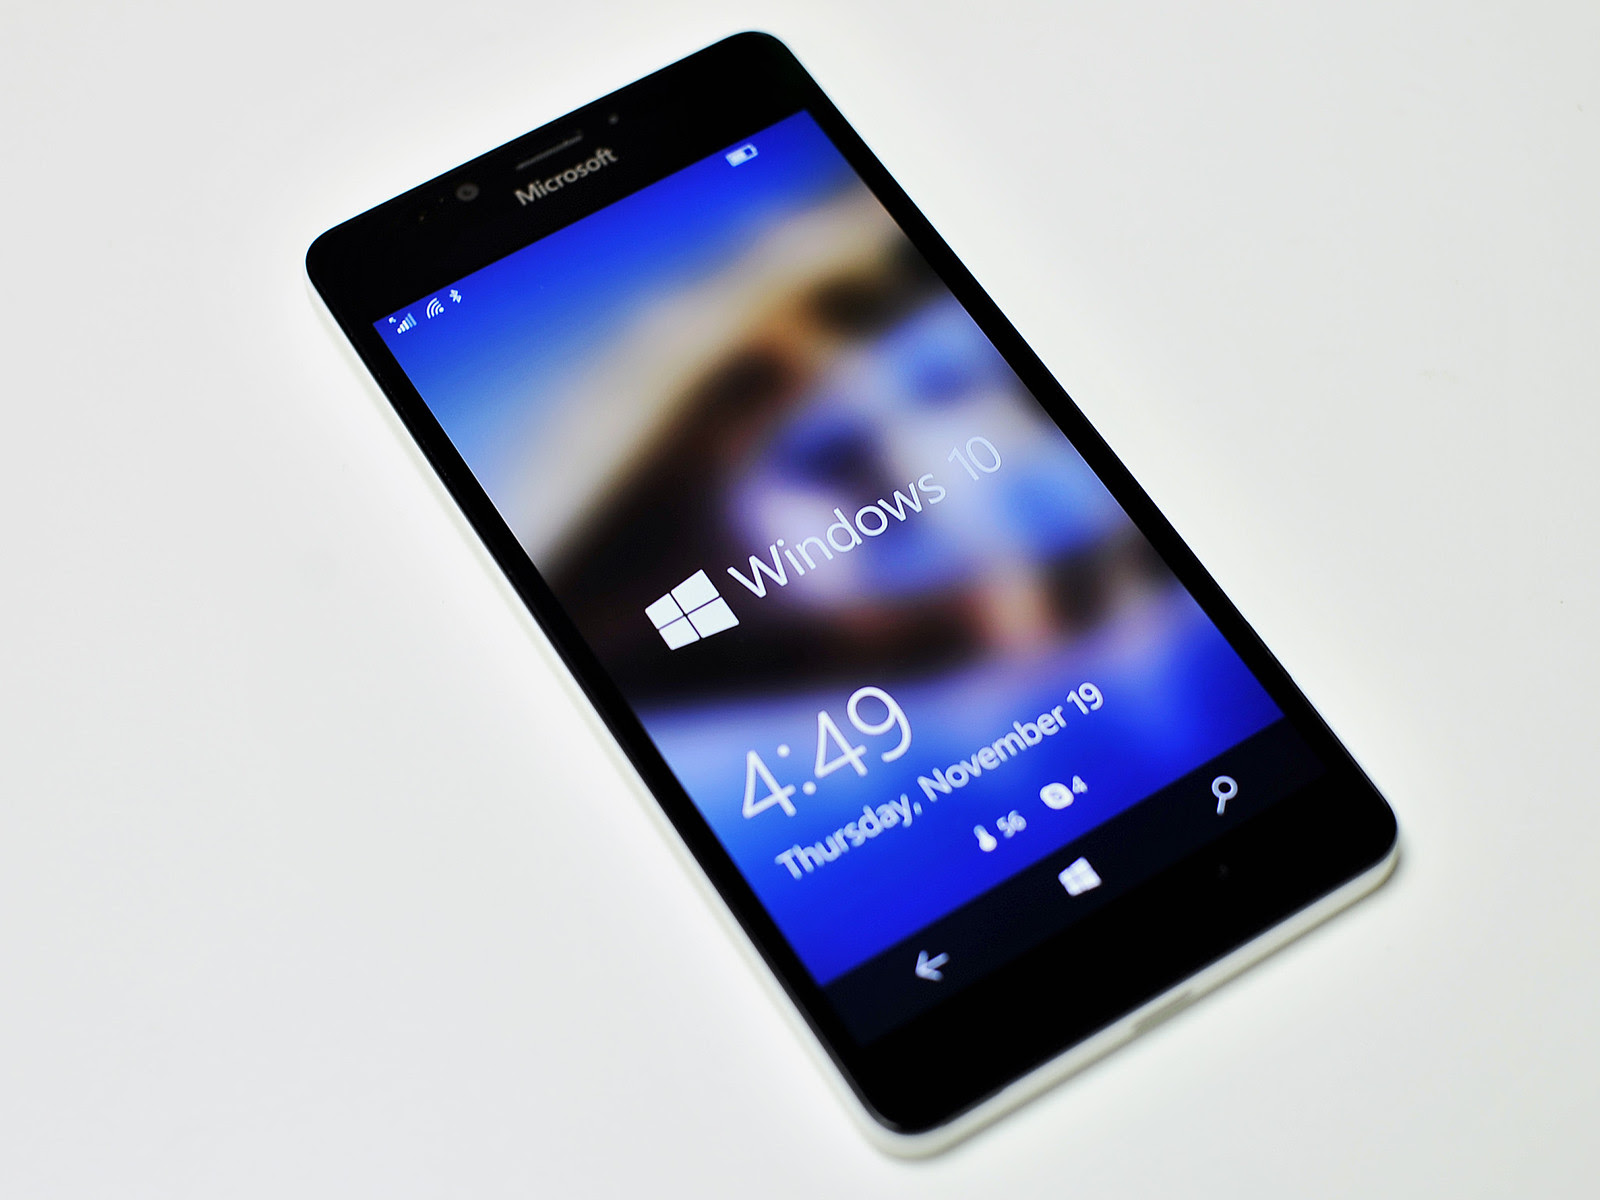 50% of Windows Phones Can Upgrade to Windows 10 Mobile